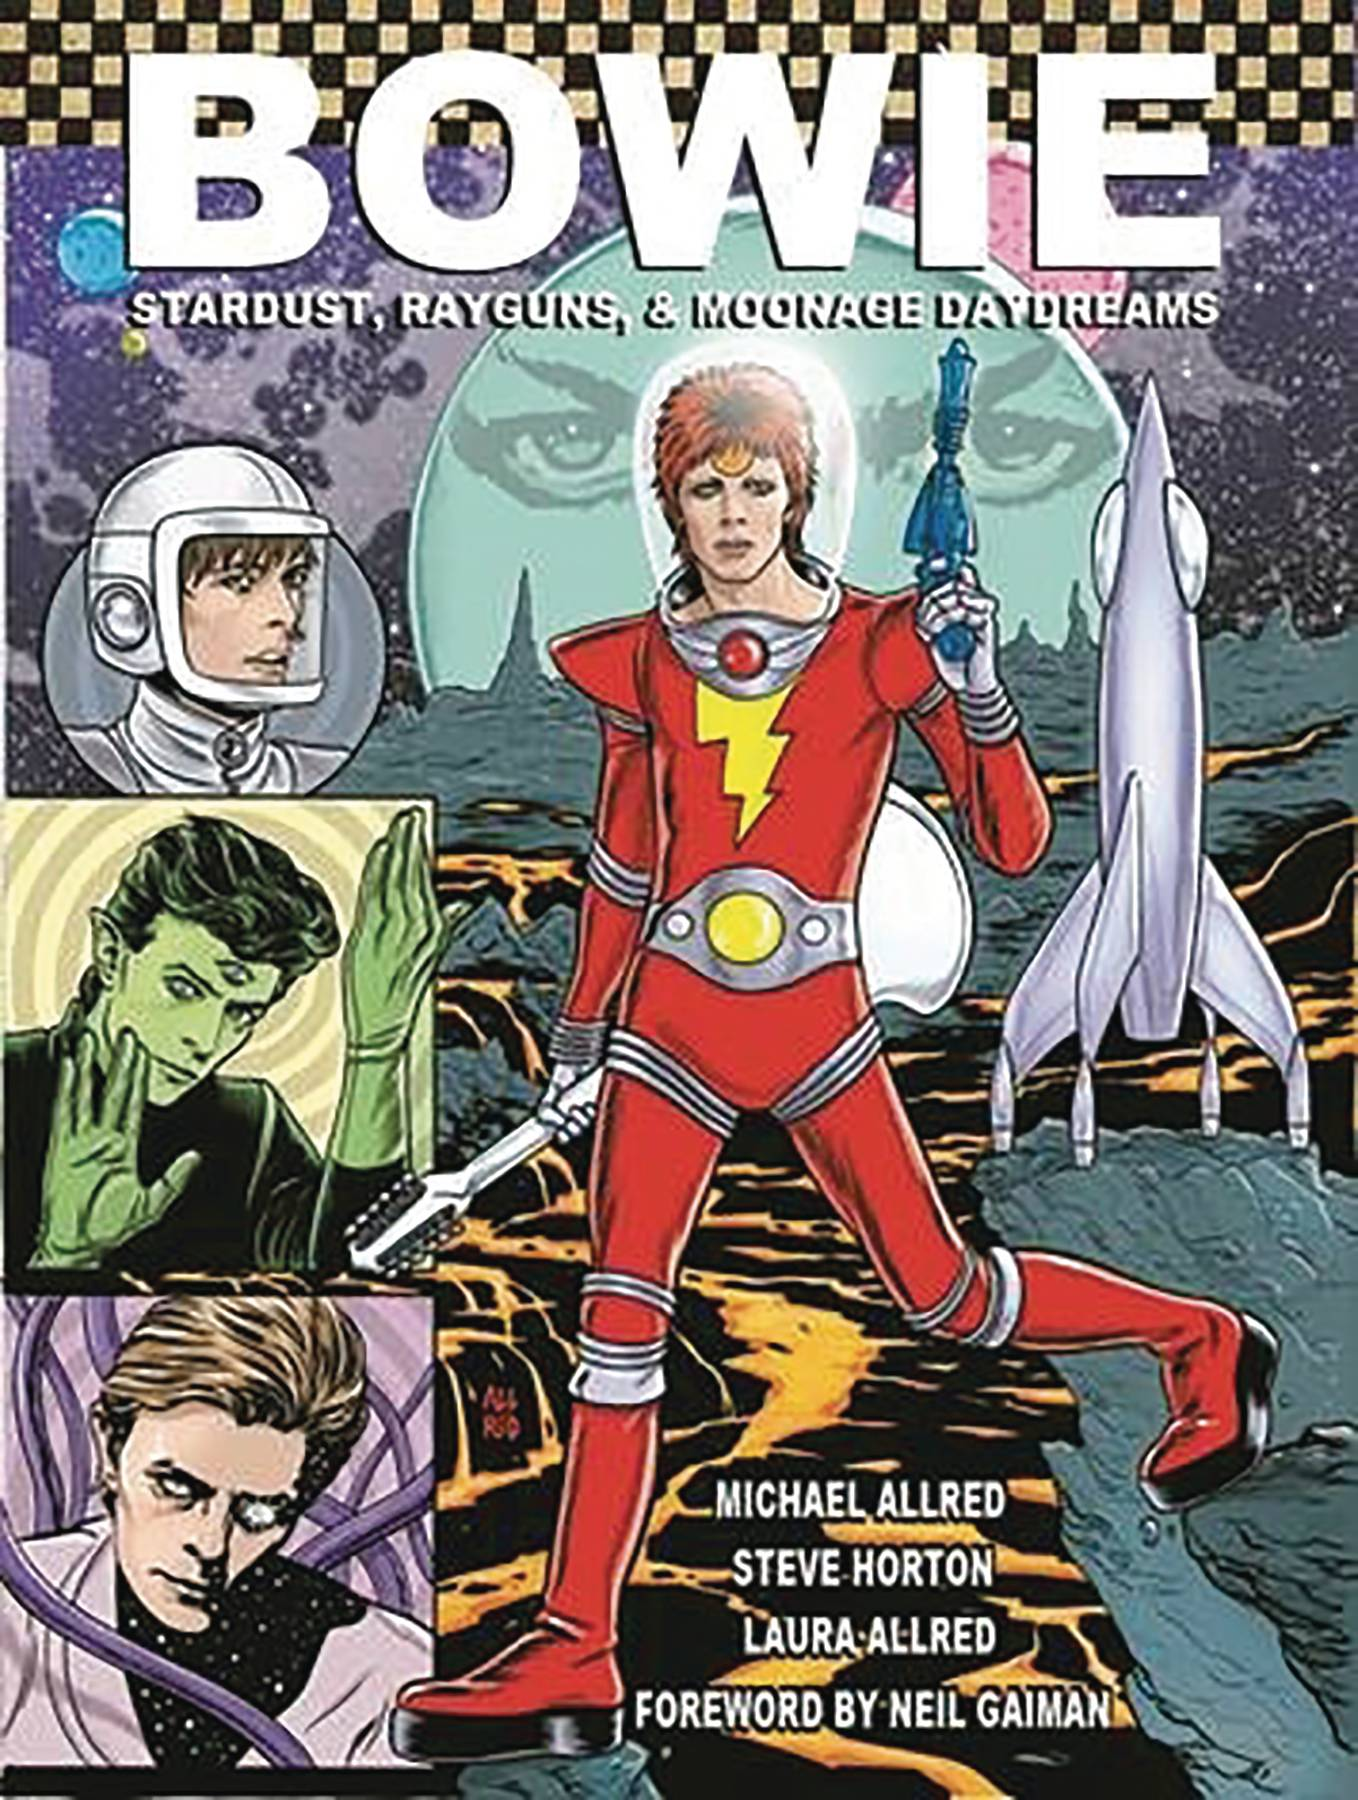 BOWIE STARDUST RAYGUNS & MOONAGE DAYDREAMS HC